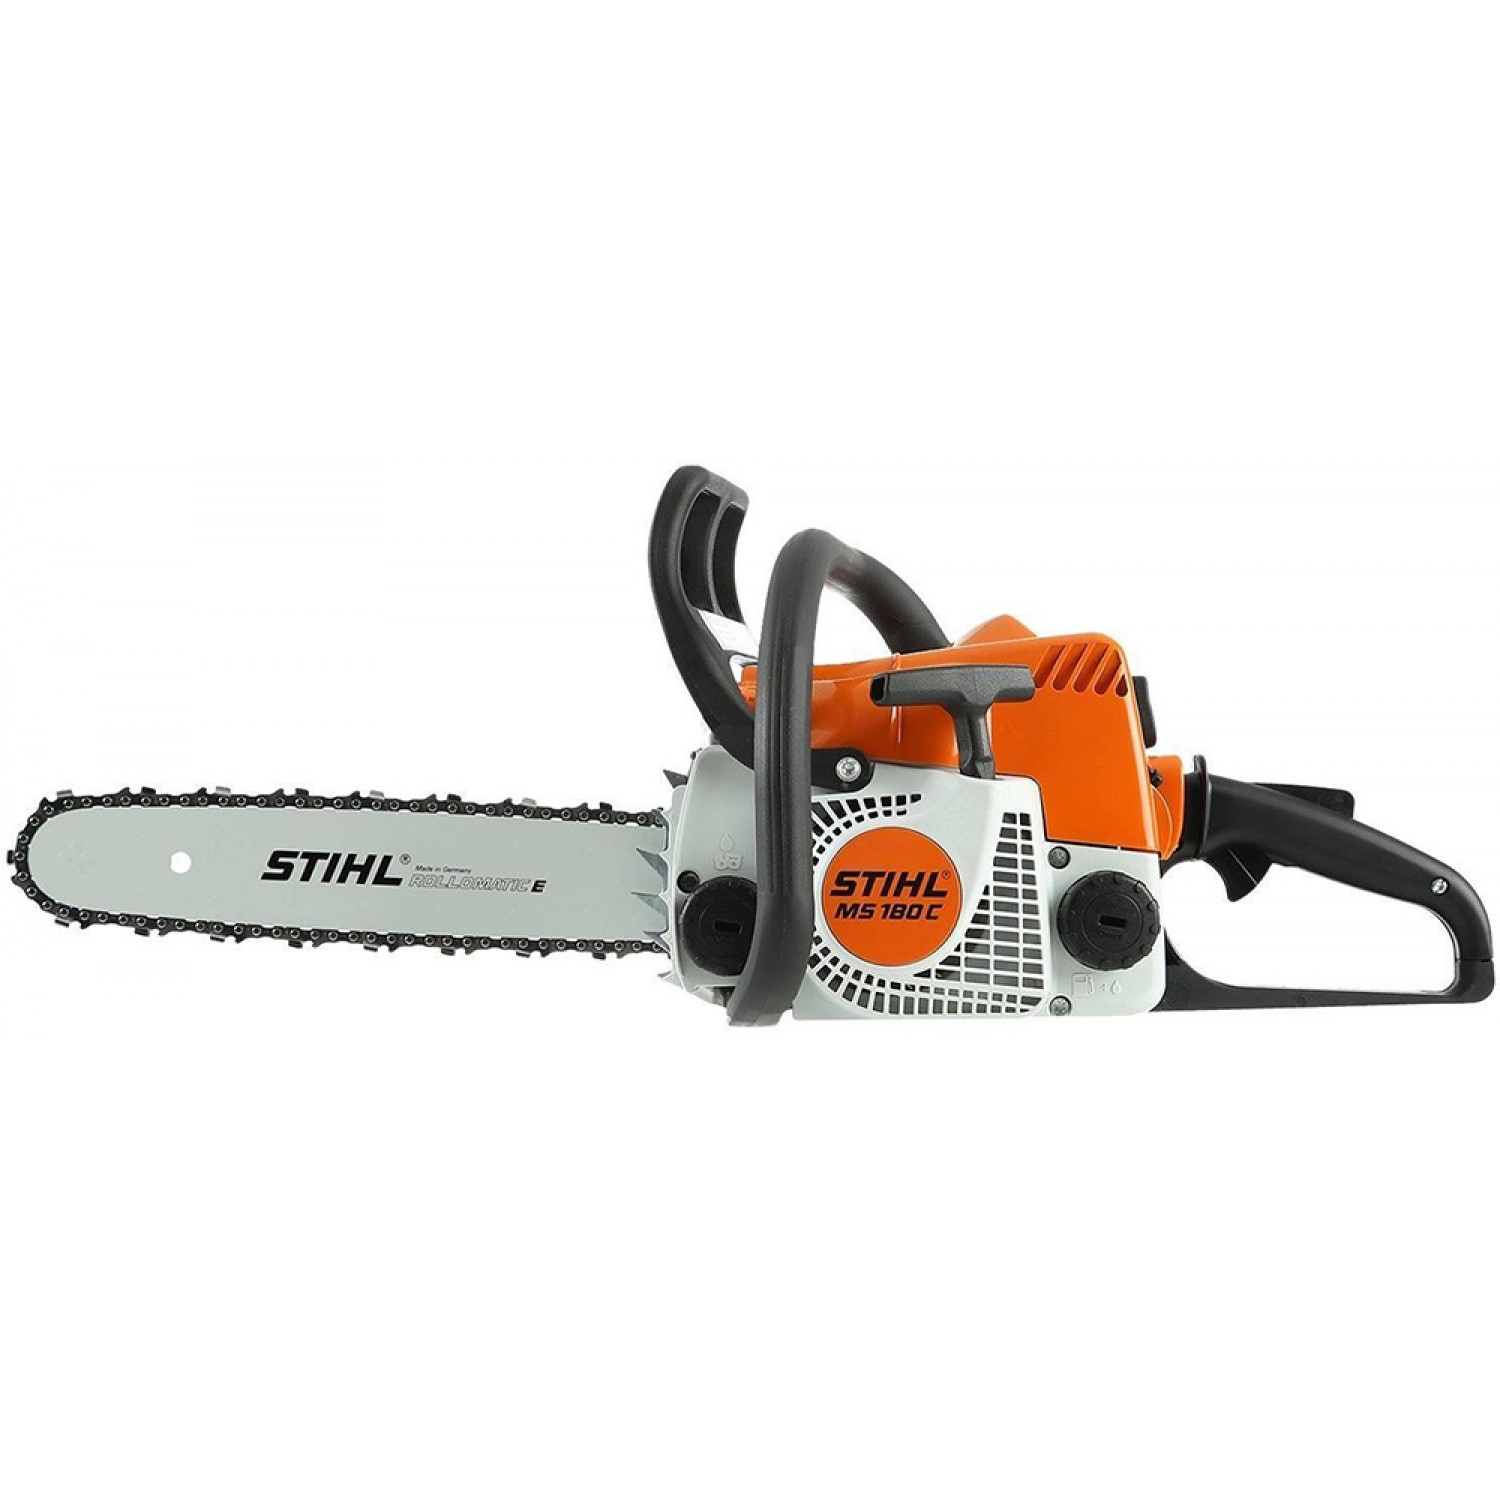 Бензопила STIHL MS 180  C-BE, шина R 35 см,